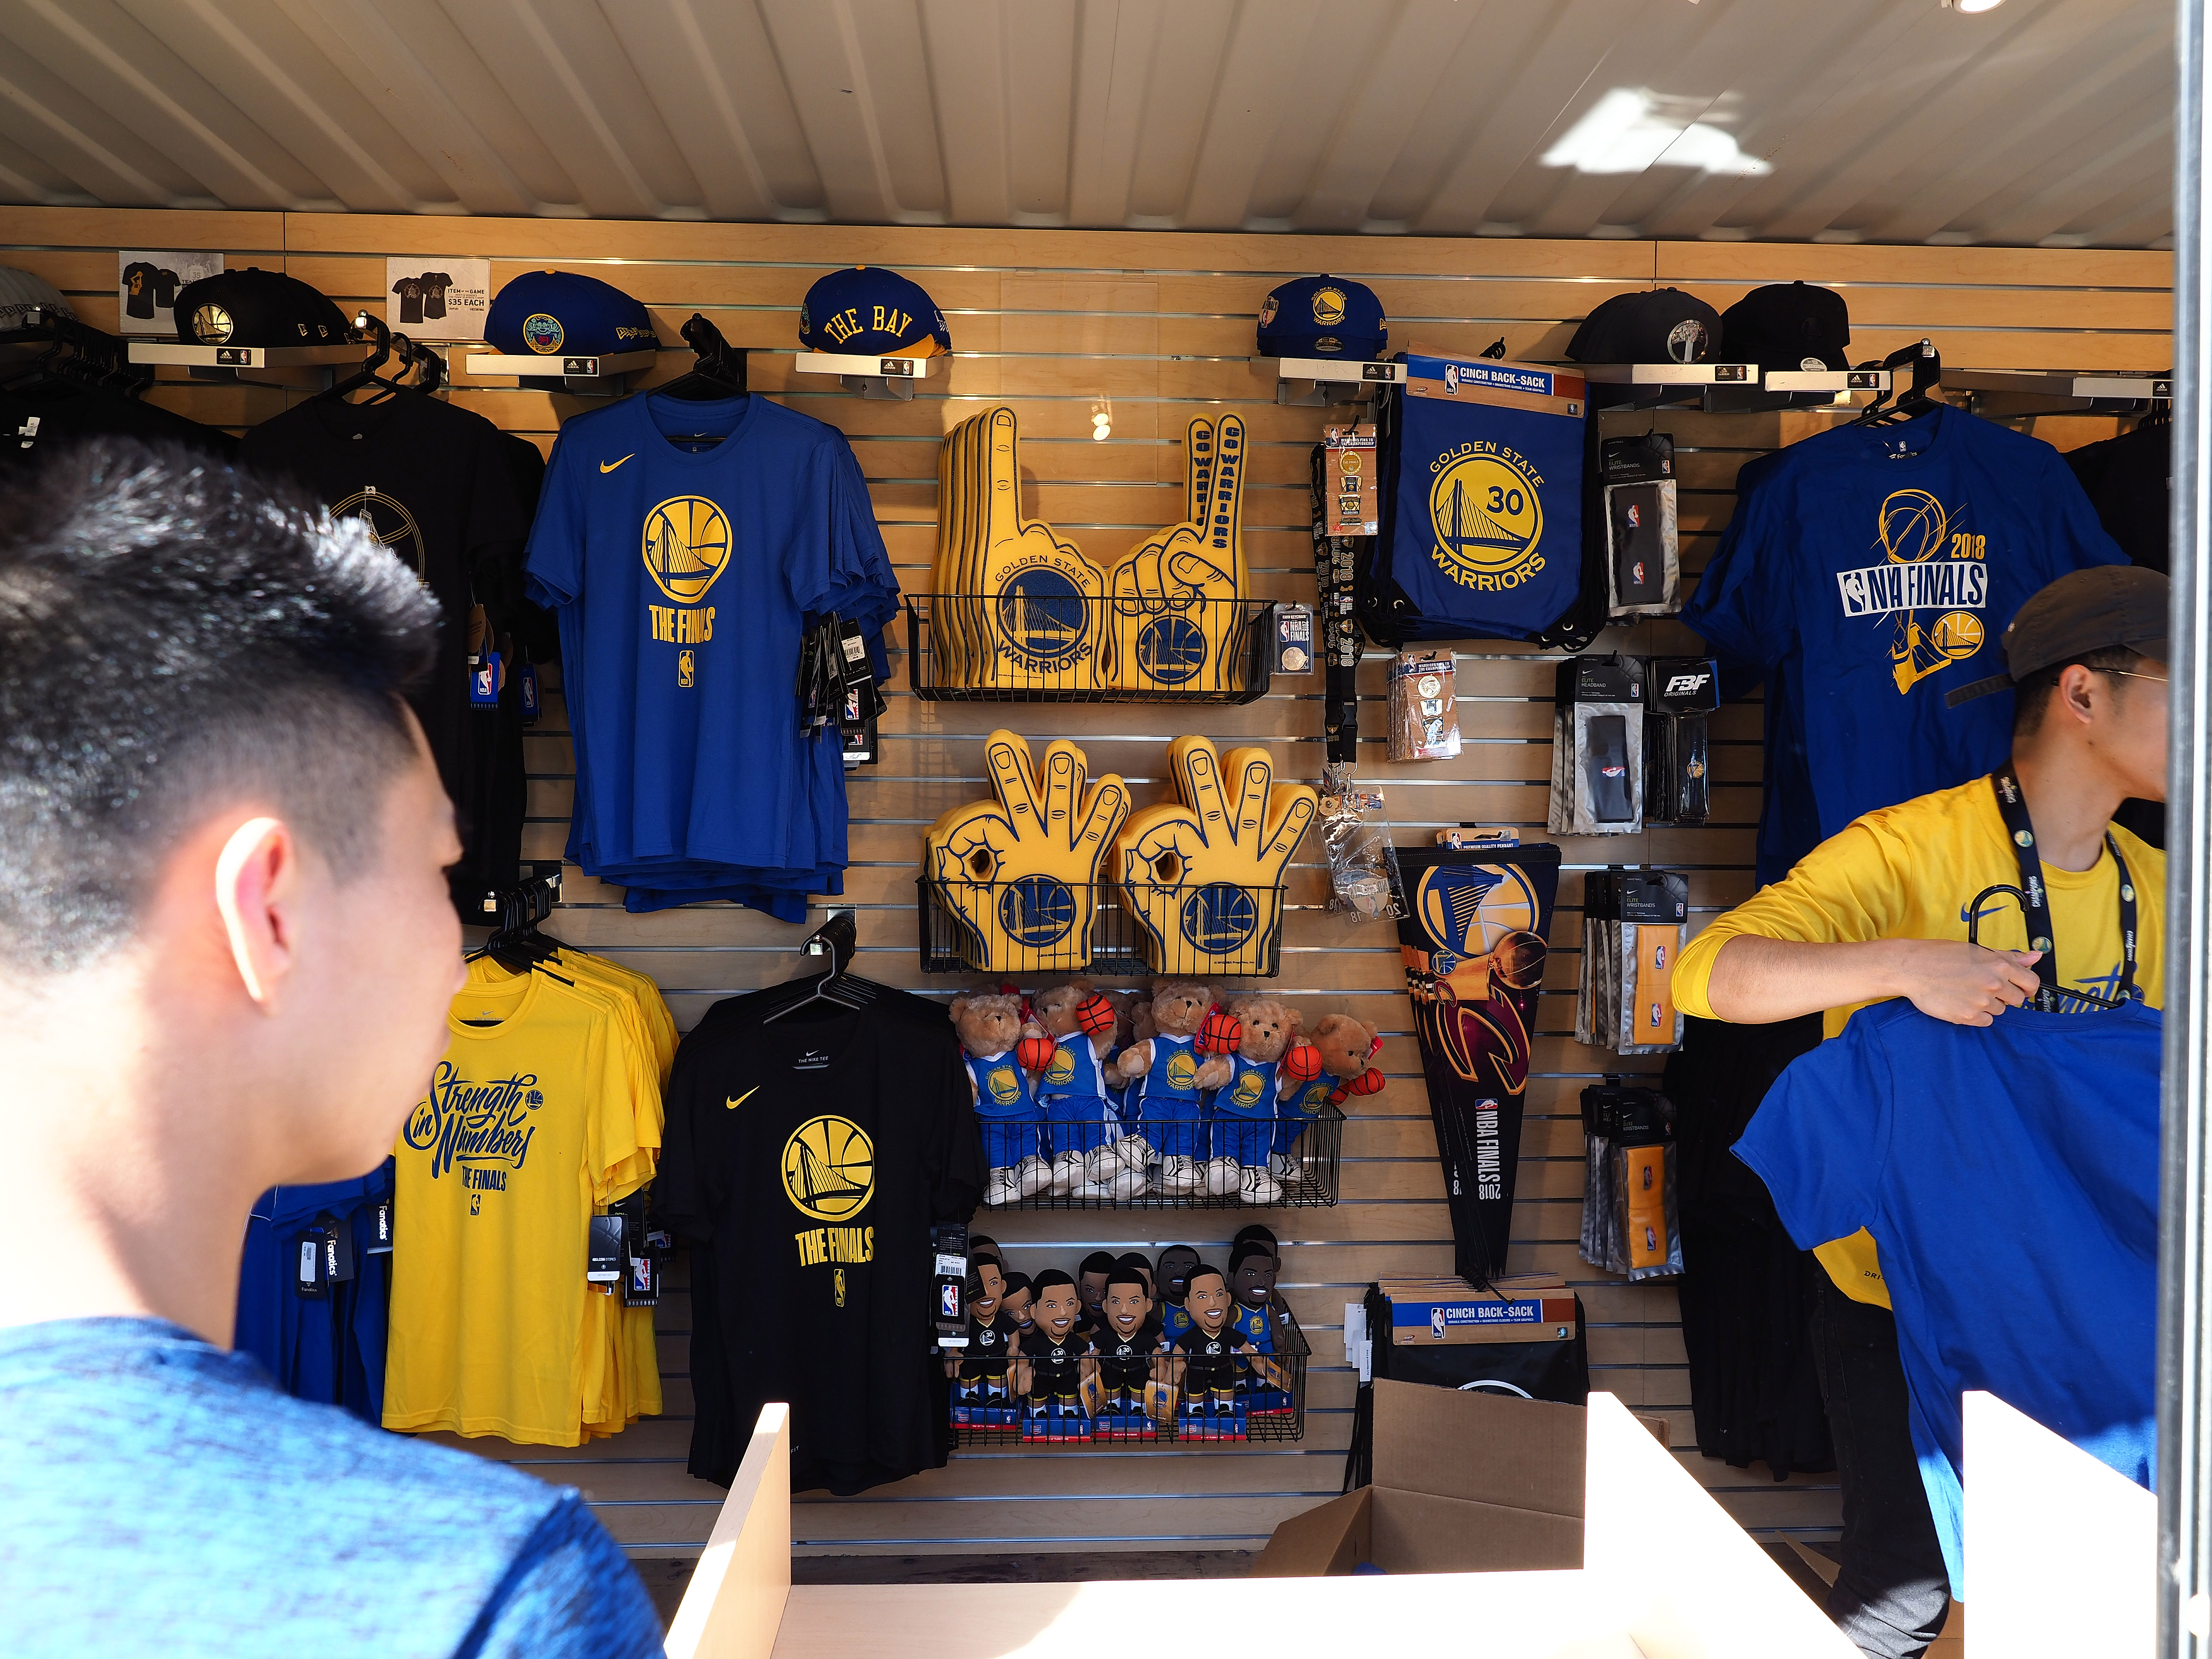 May 31, 2018; Oakland, CA, USA; Spectators gather to buy merchandise before the Golden State Warriors play against the Cleveland Cavaliers in game one of the 2018 NBA Finals at Oracle Arena. Mandatory Credit: Kelley L Cox